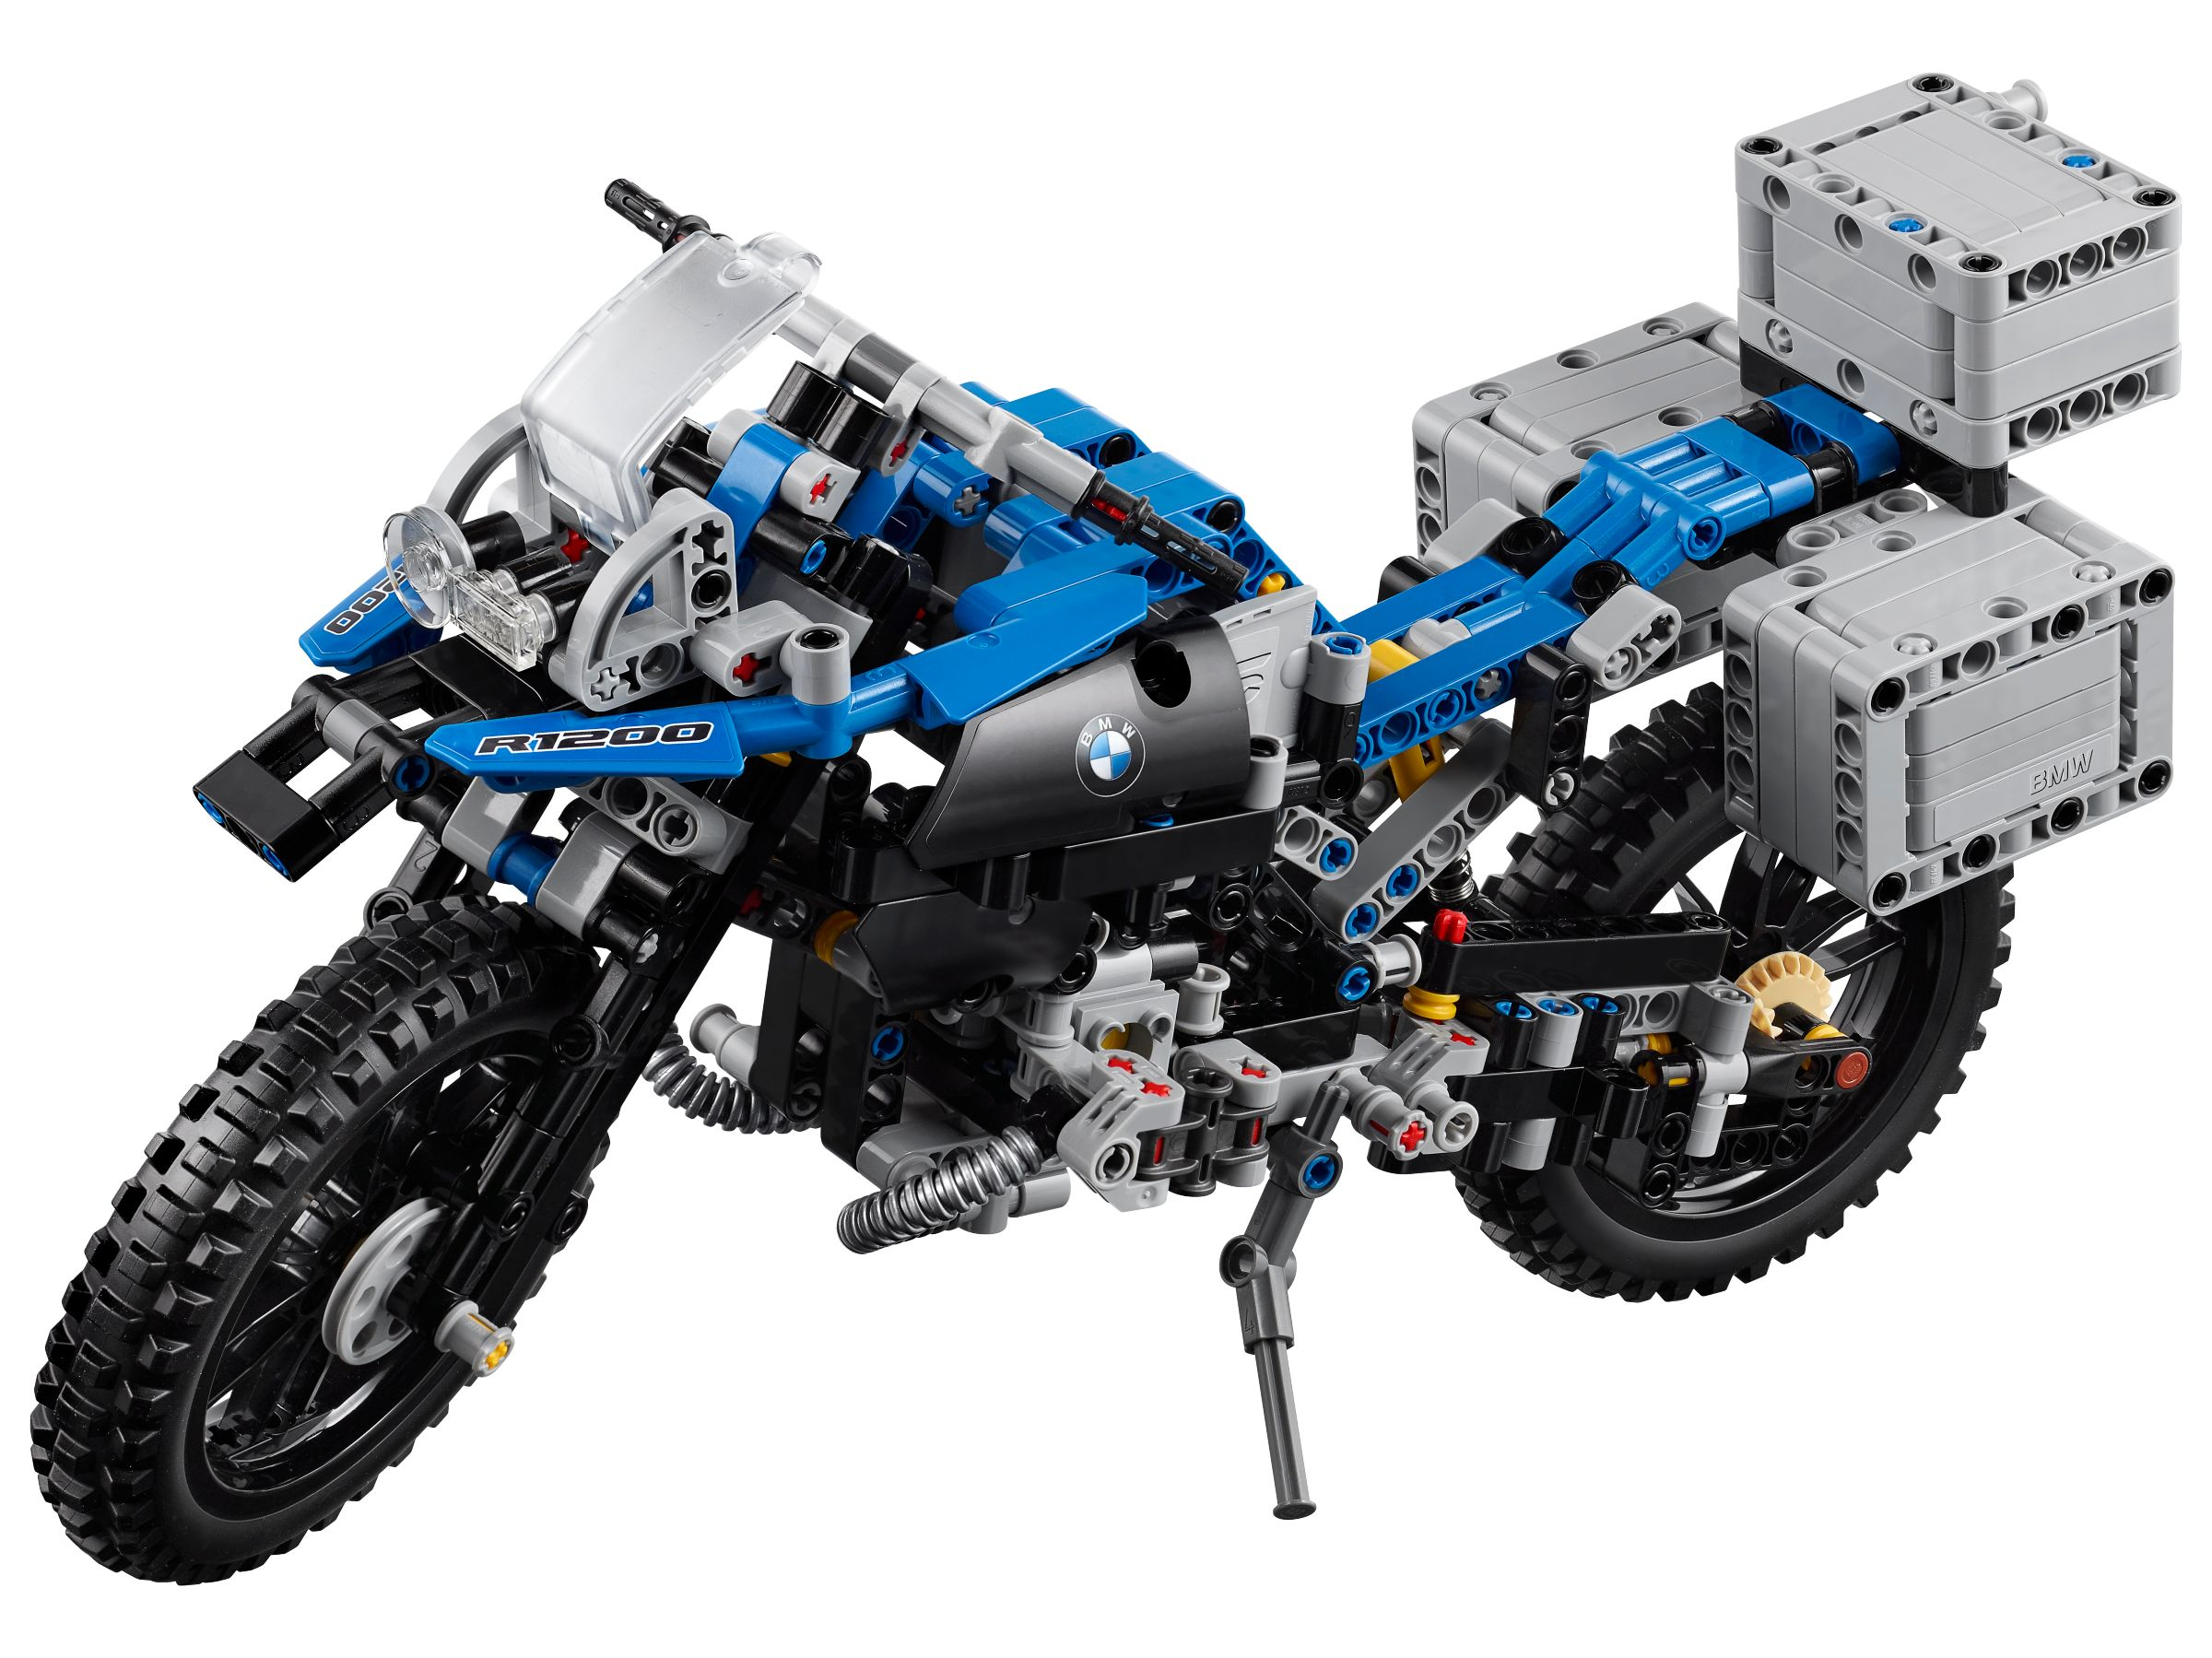 LEGO Technic 42063 BMW R 1200 GS Adventure LEGO_42063.jpg